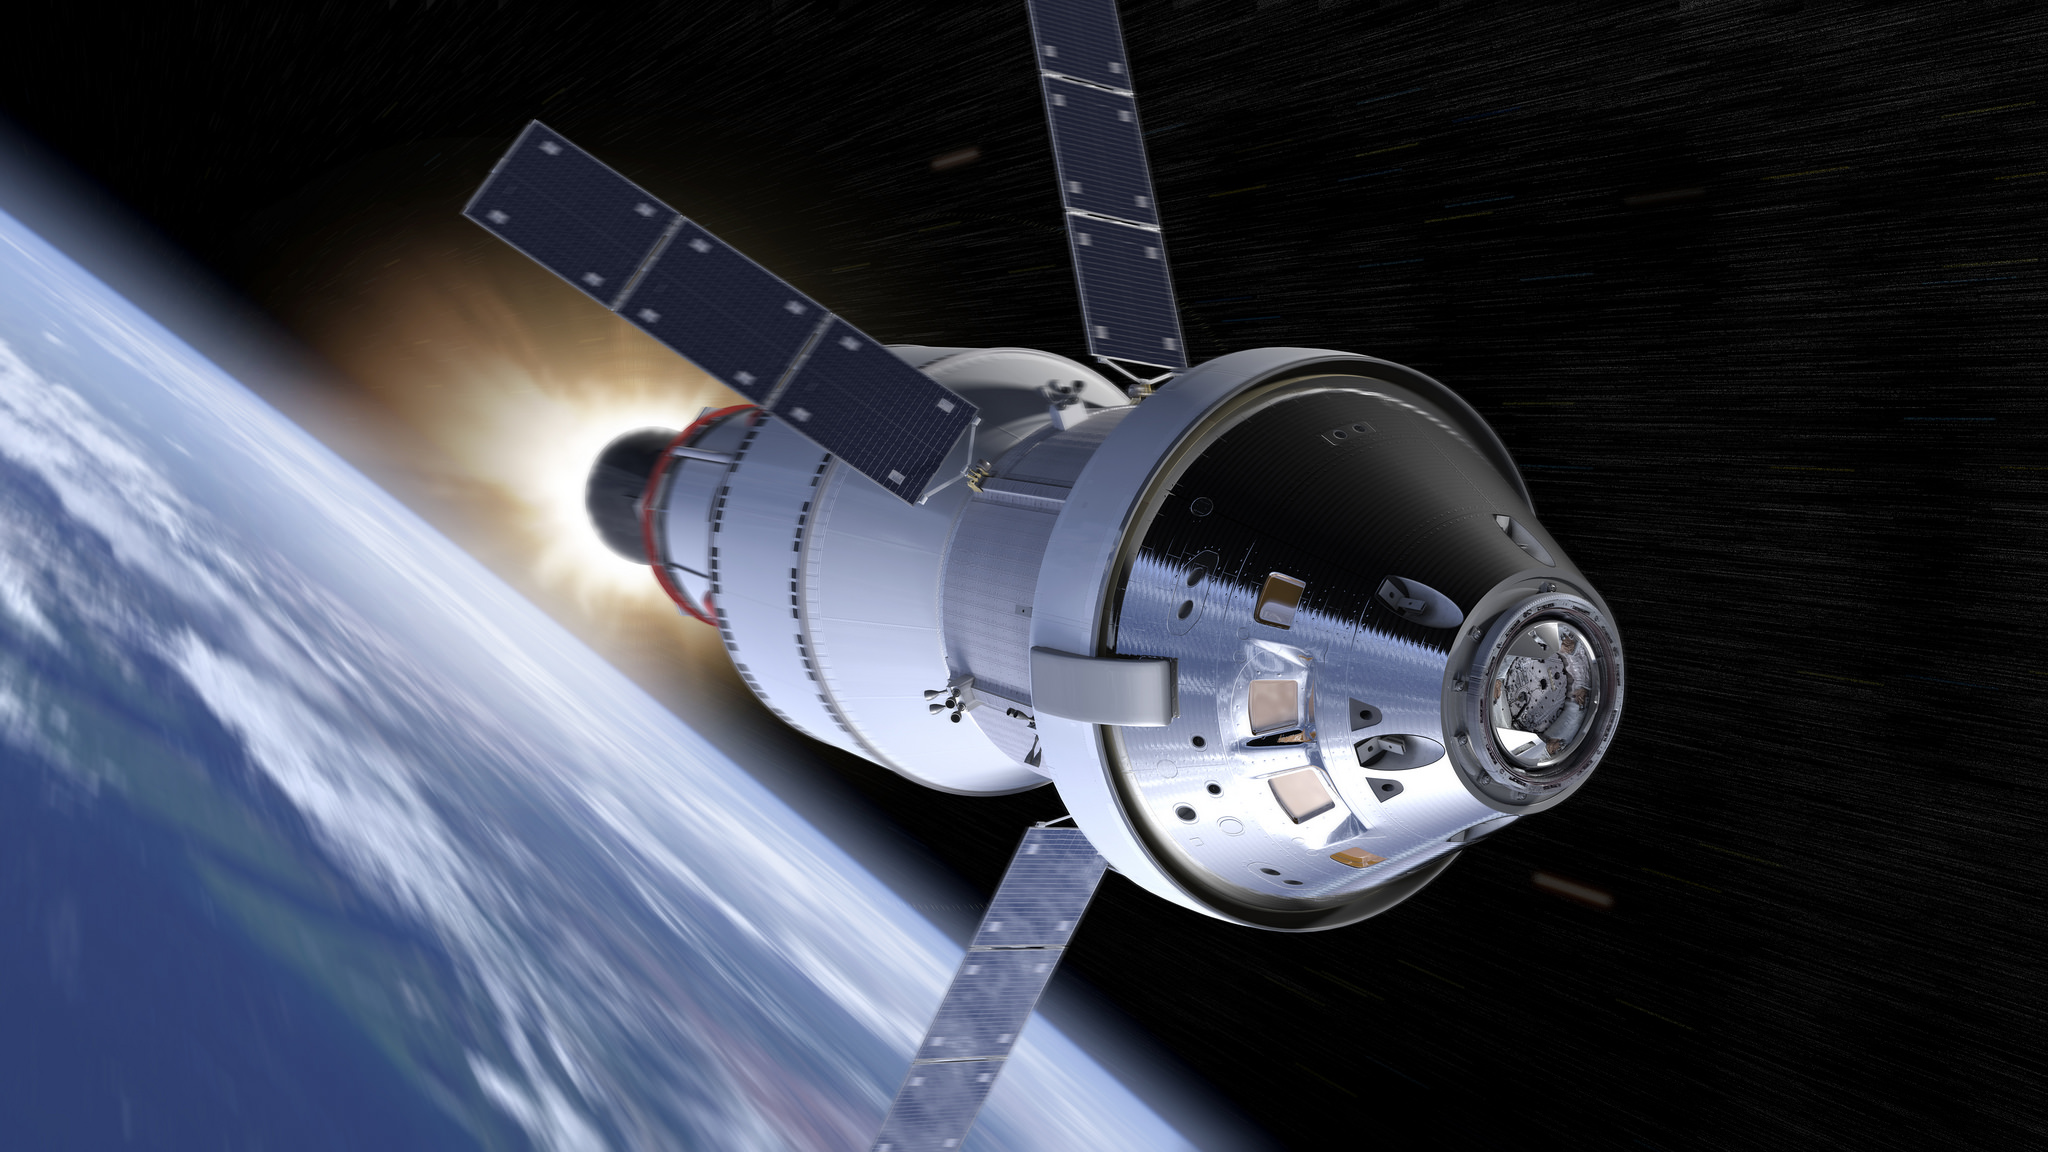 Guiding Orion through Deep Space | Draper - Engineering Possibilities